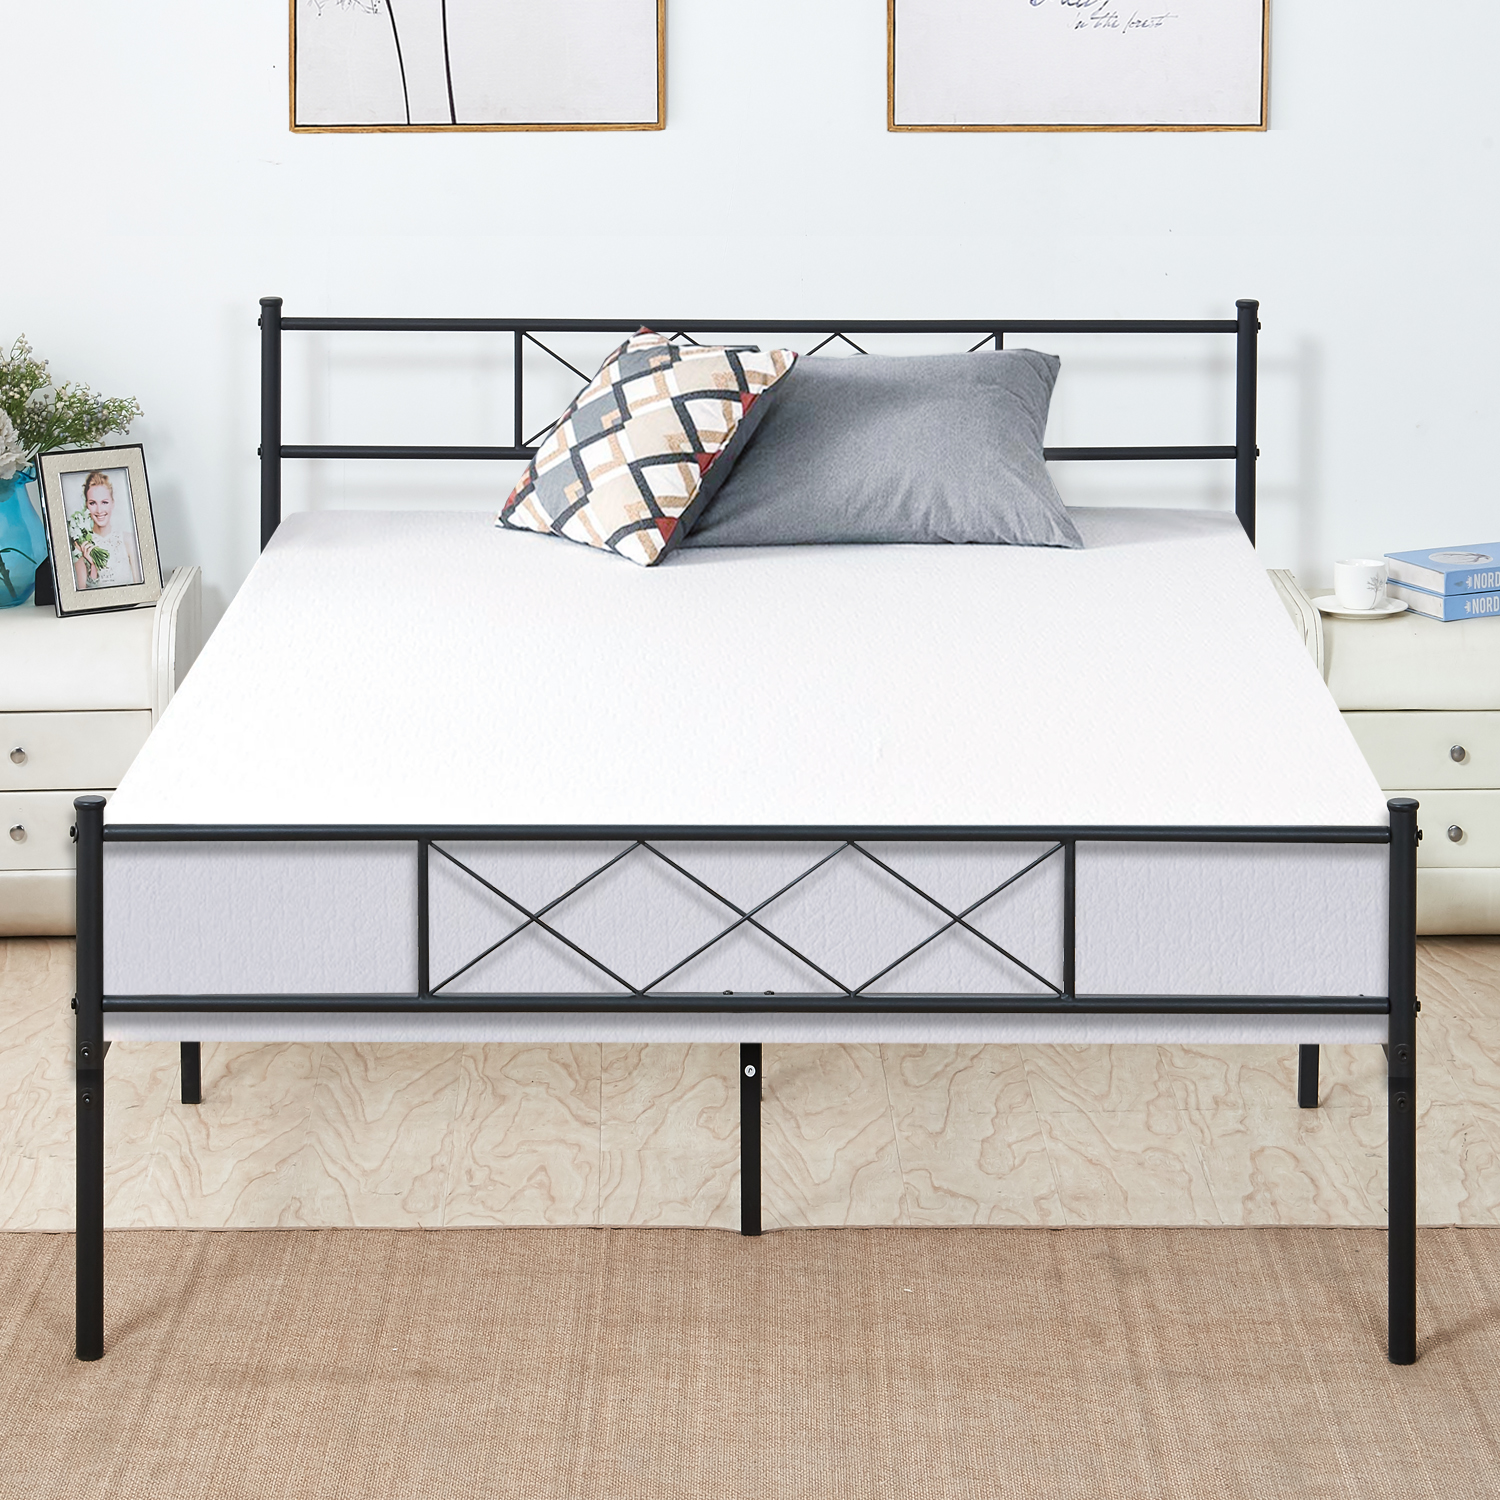 new style 24600 0a607 Queen Size Platform Bed Frame Fluted Design Fix Mattress,Optional for Box  Spring Need,with Storage Space,Headboard Footboard,Slats Support,